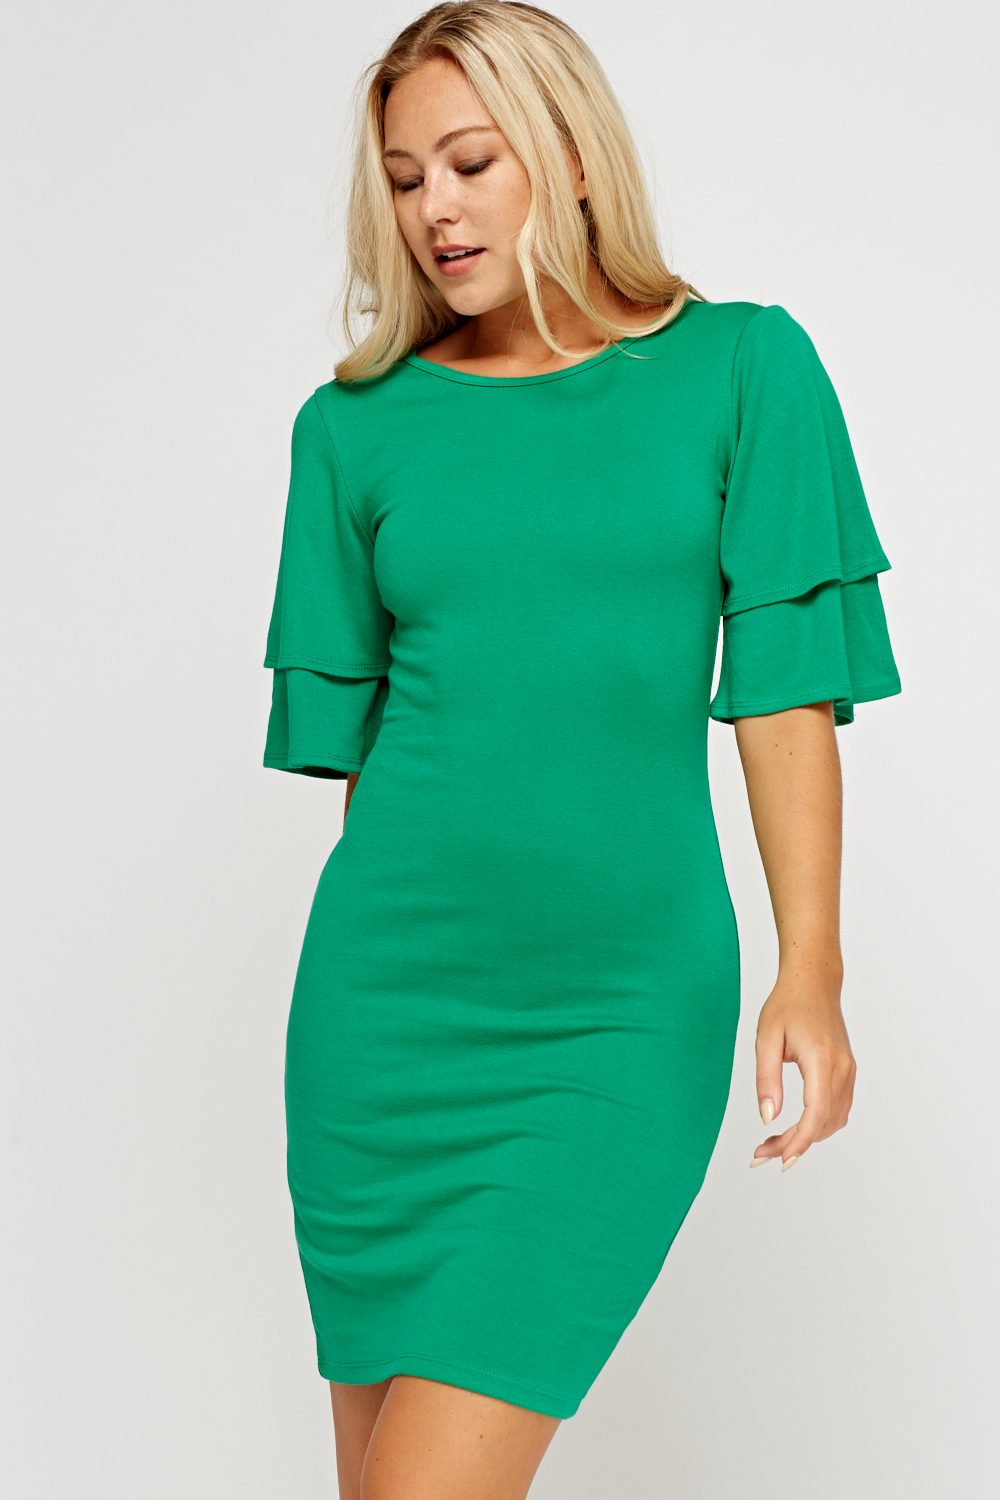 Bodycon Dresses | Buy cheap Bodycon Dresses for just £5 on ...